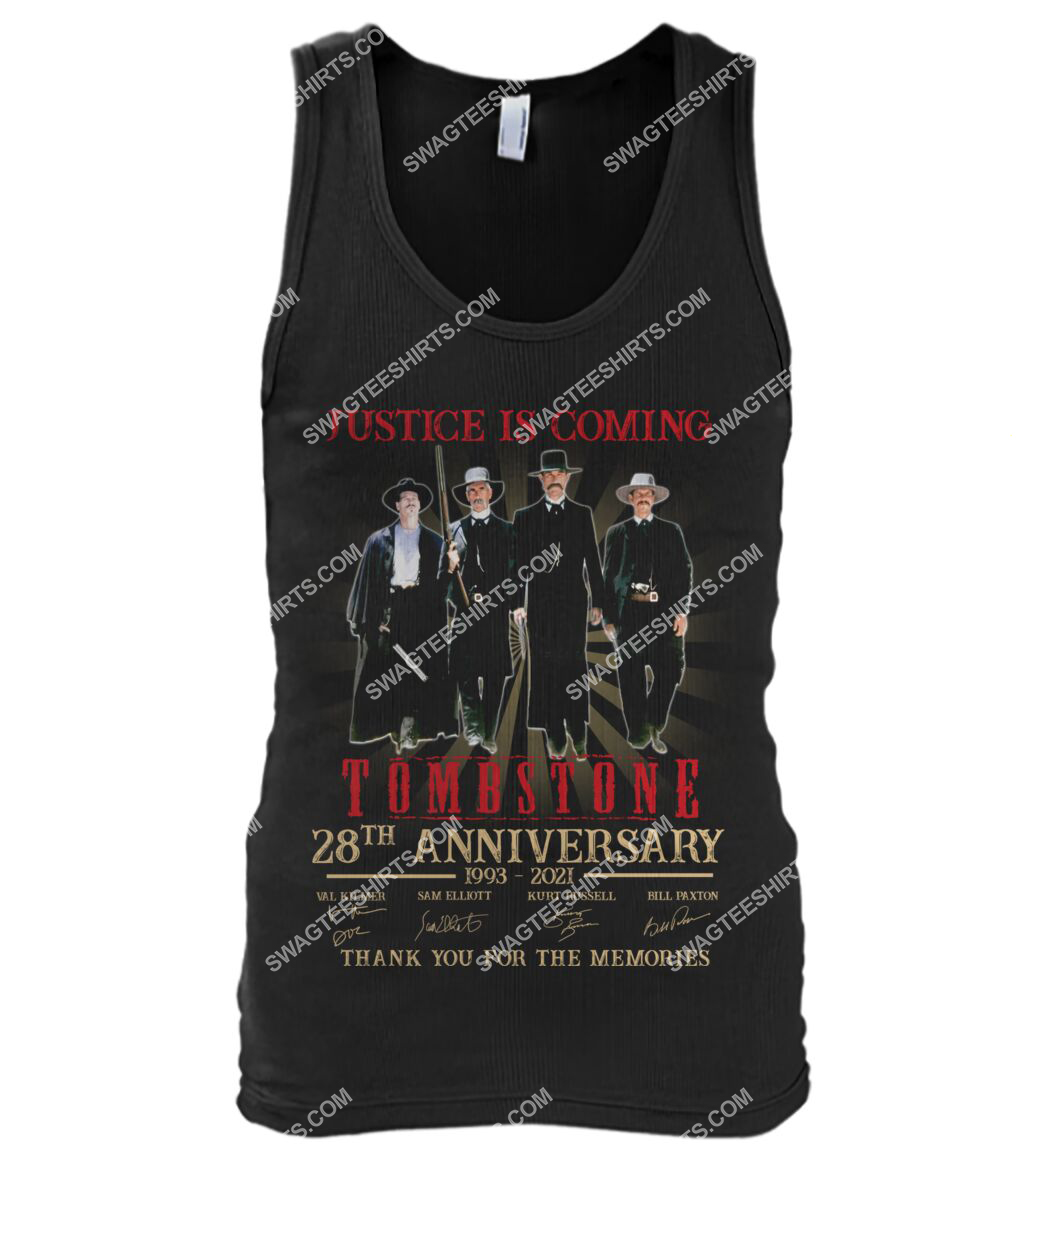 justice is coming tombstone 28th anniversary thank you for the memories tank top 1